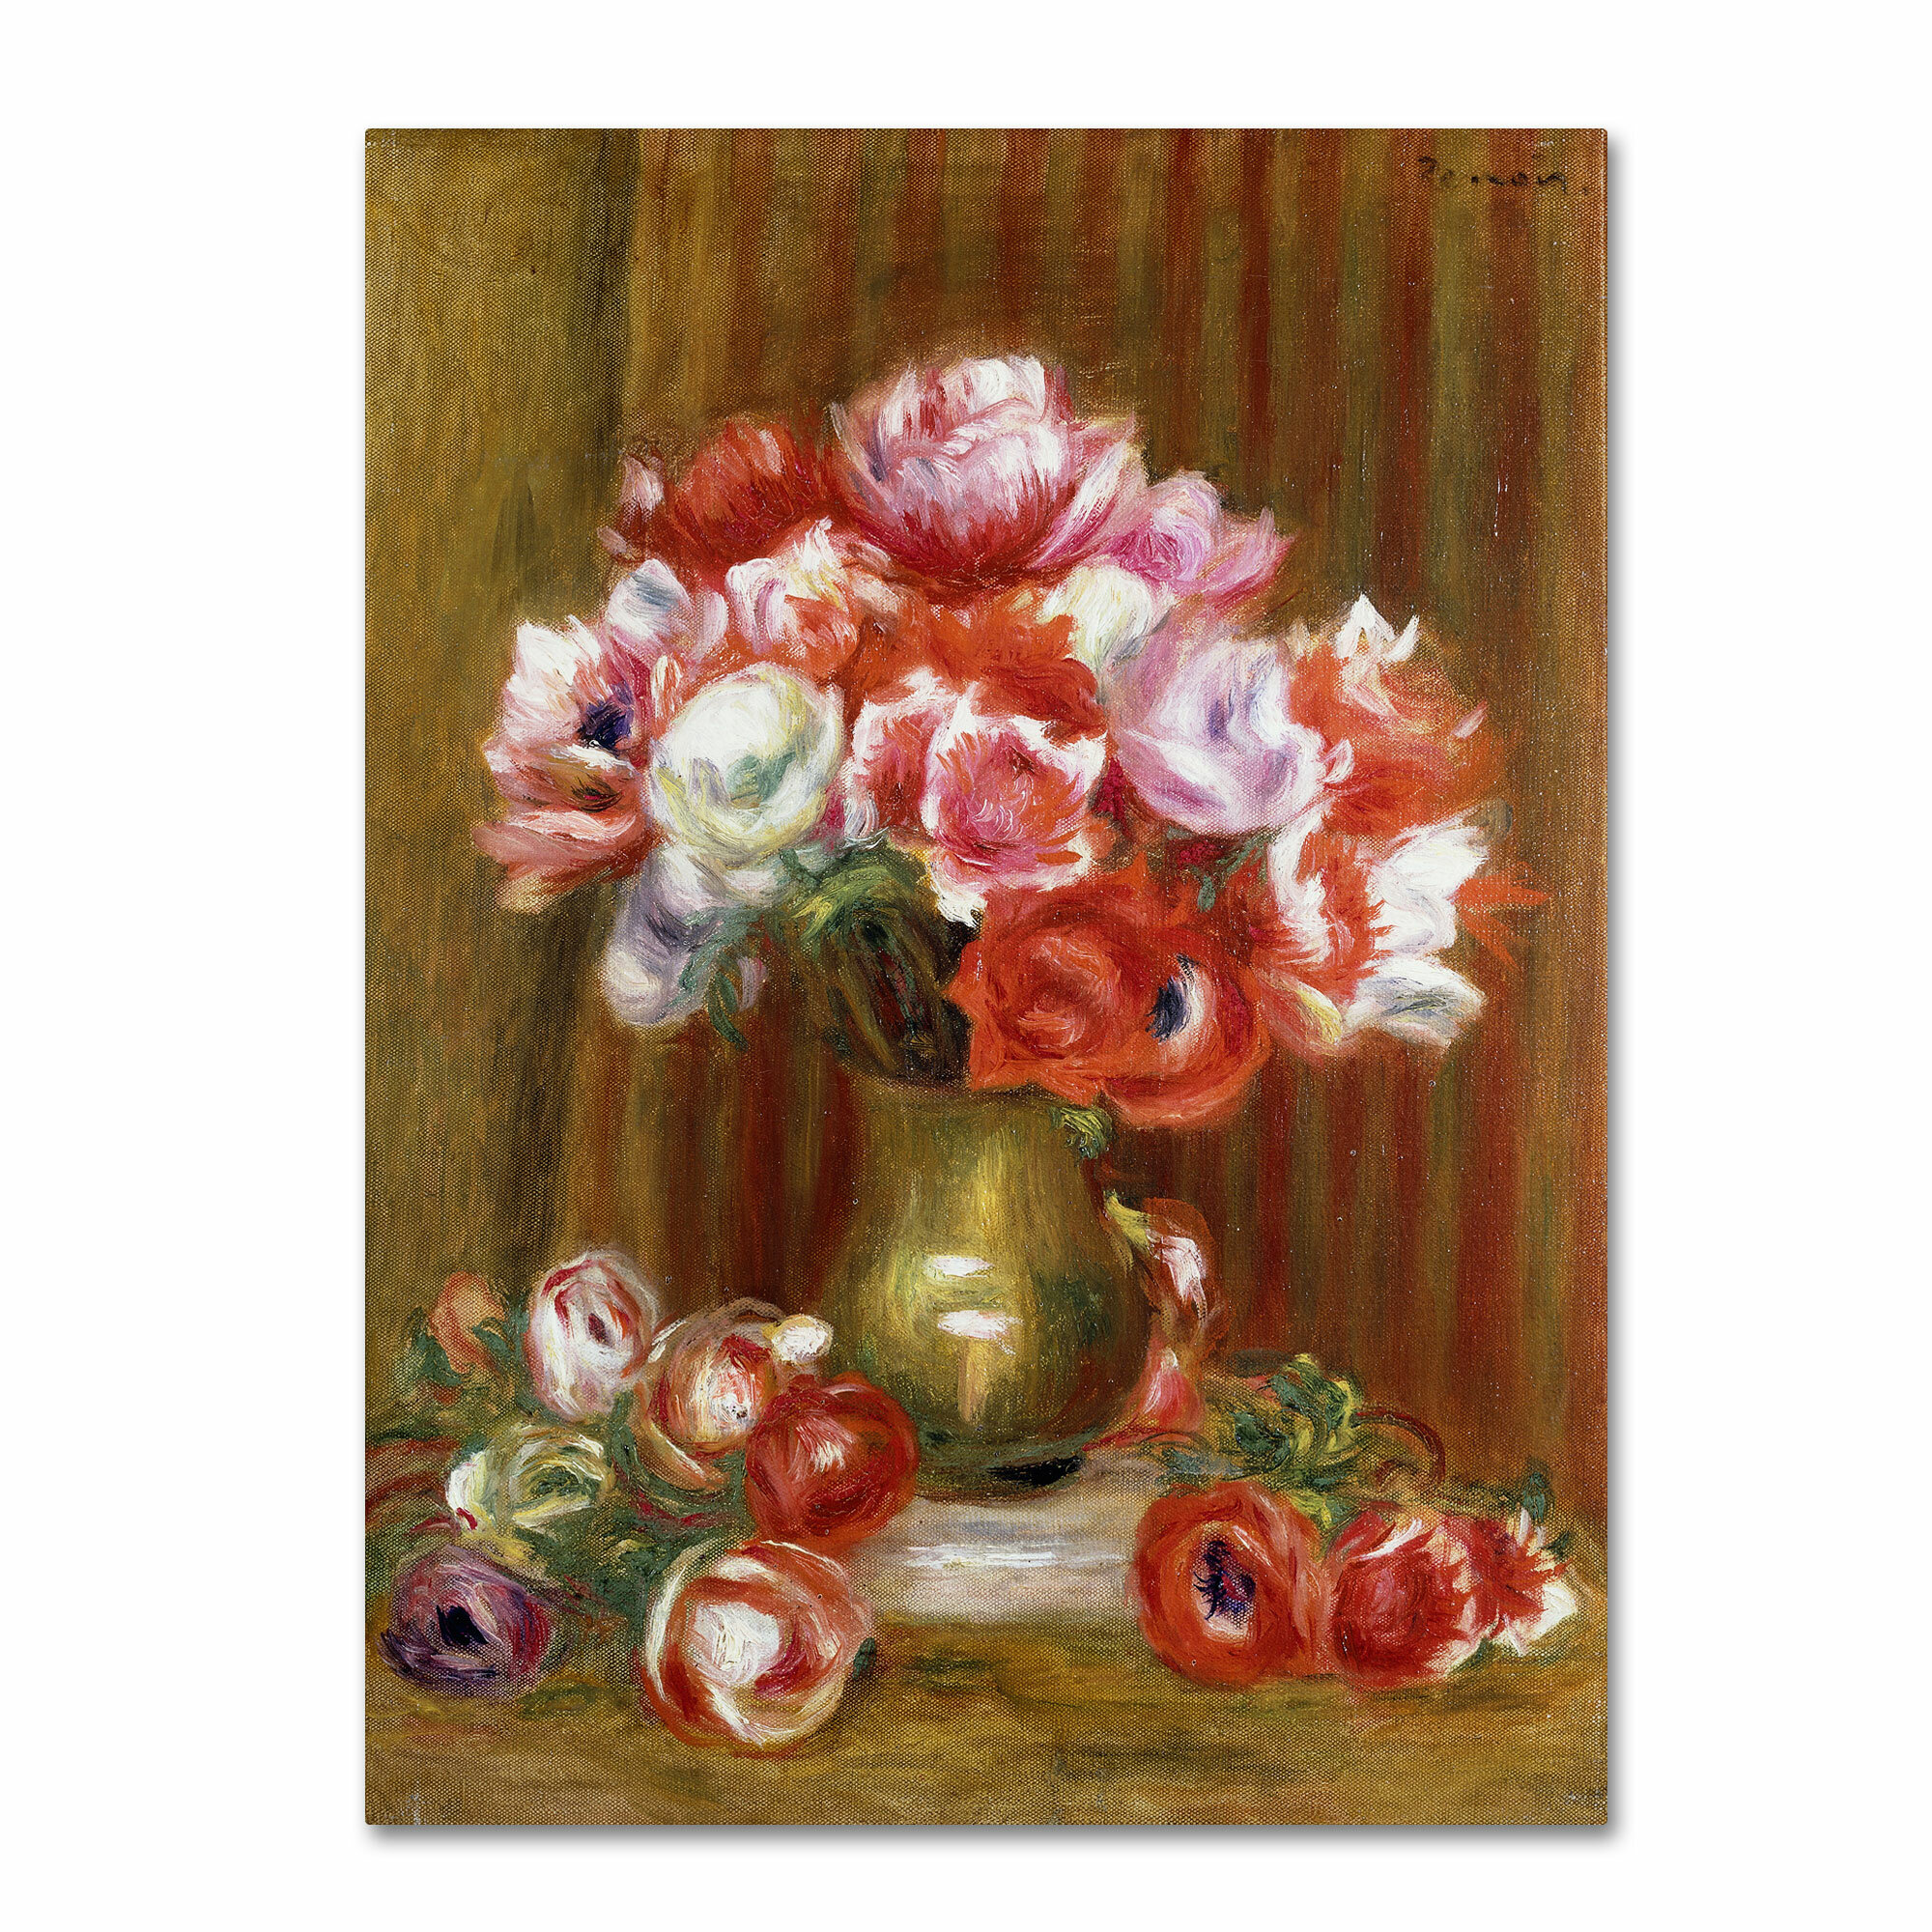 The circus Fernando by Pierre-Auguste Renoir Giclee Fine ArtRepro on Canvas